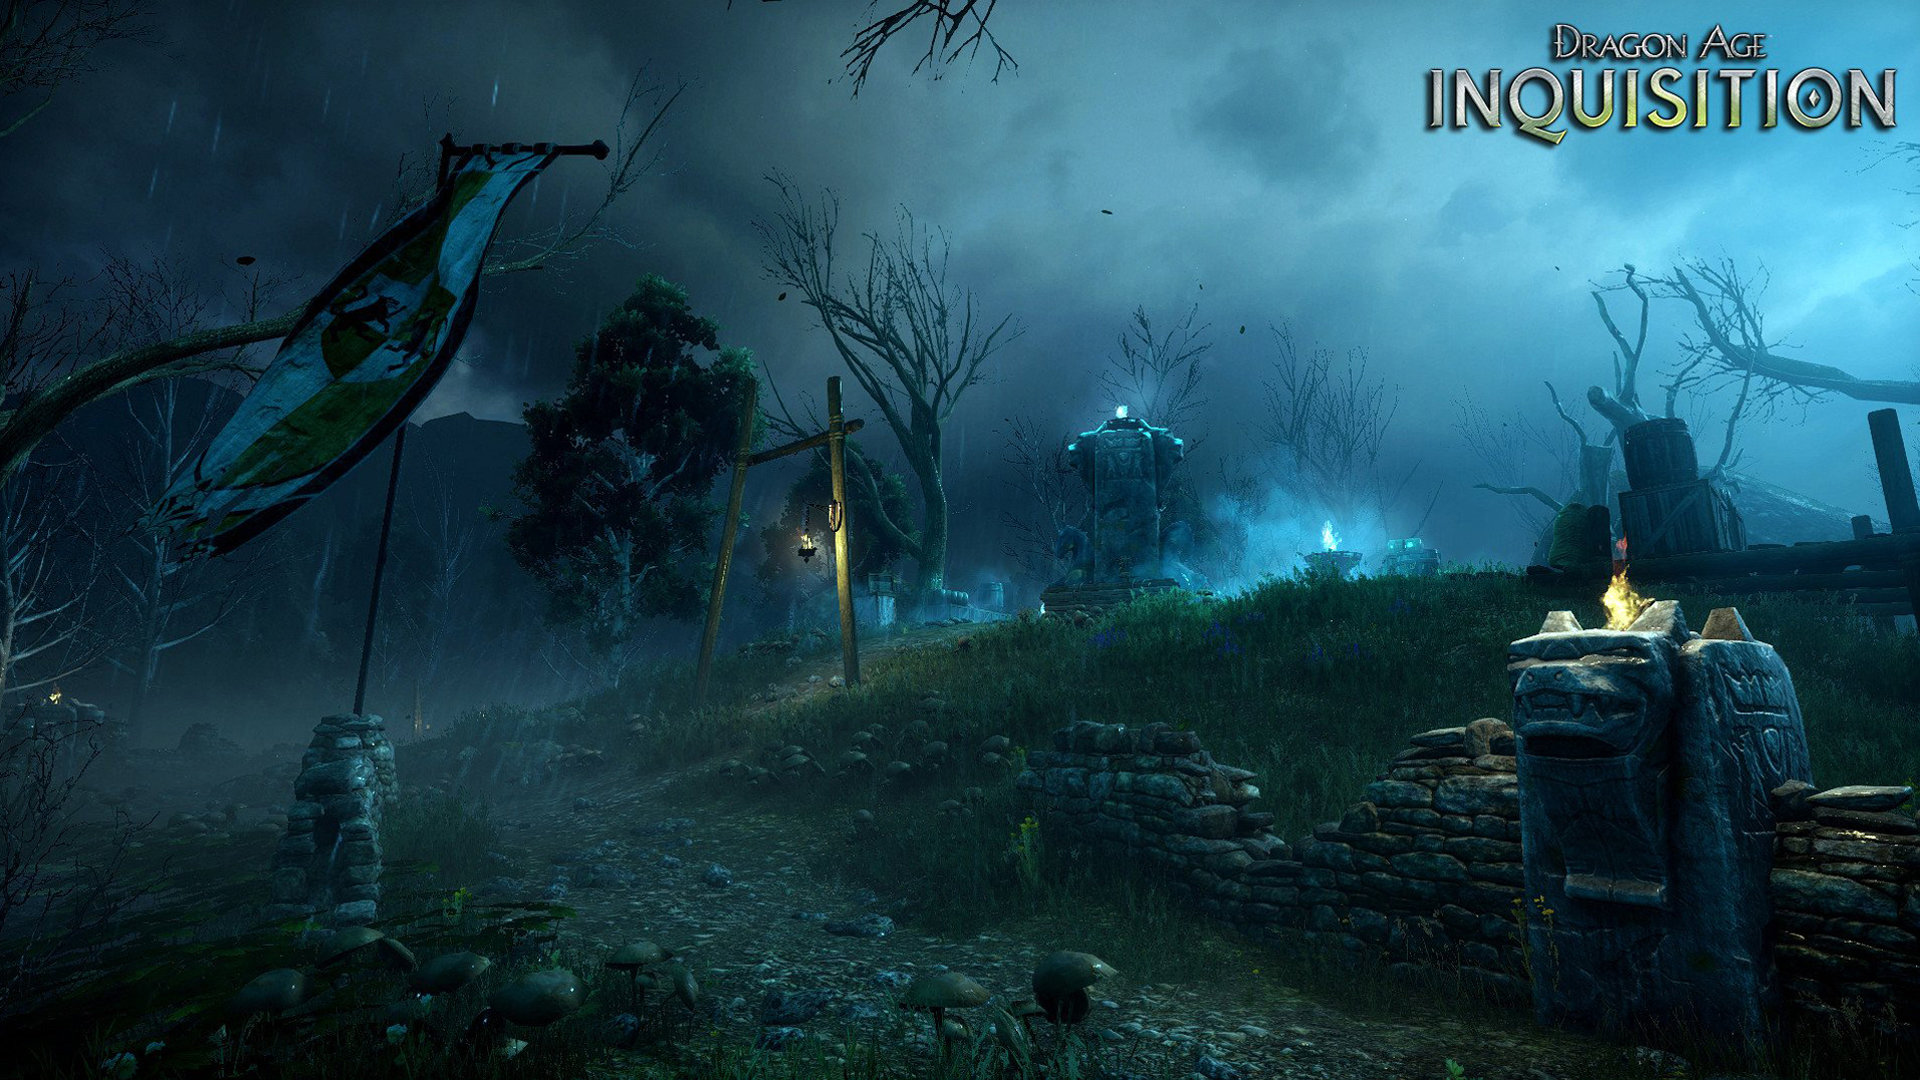 Dragon Age Inquisition Wallpapers 1920x1080 Full Hd 1080p